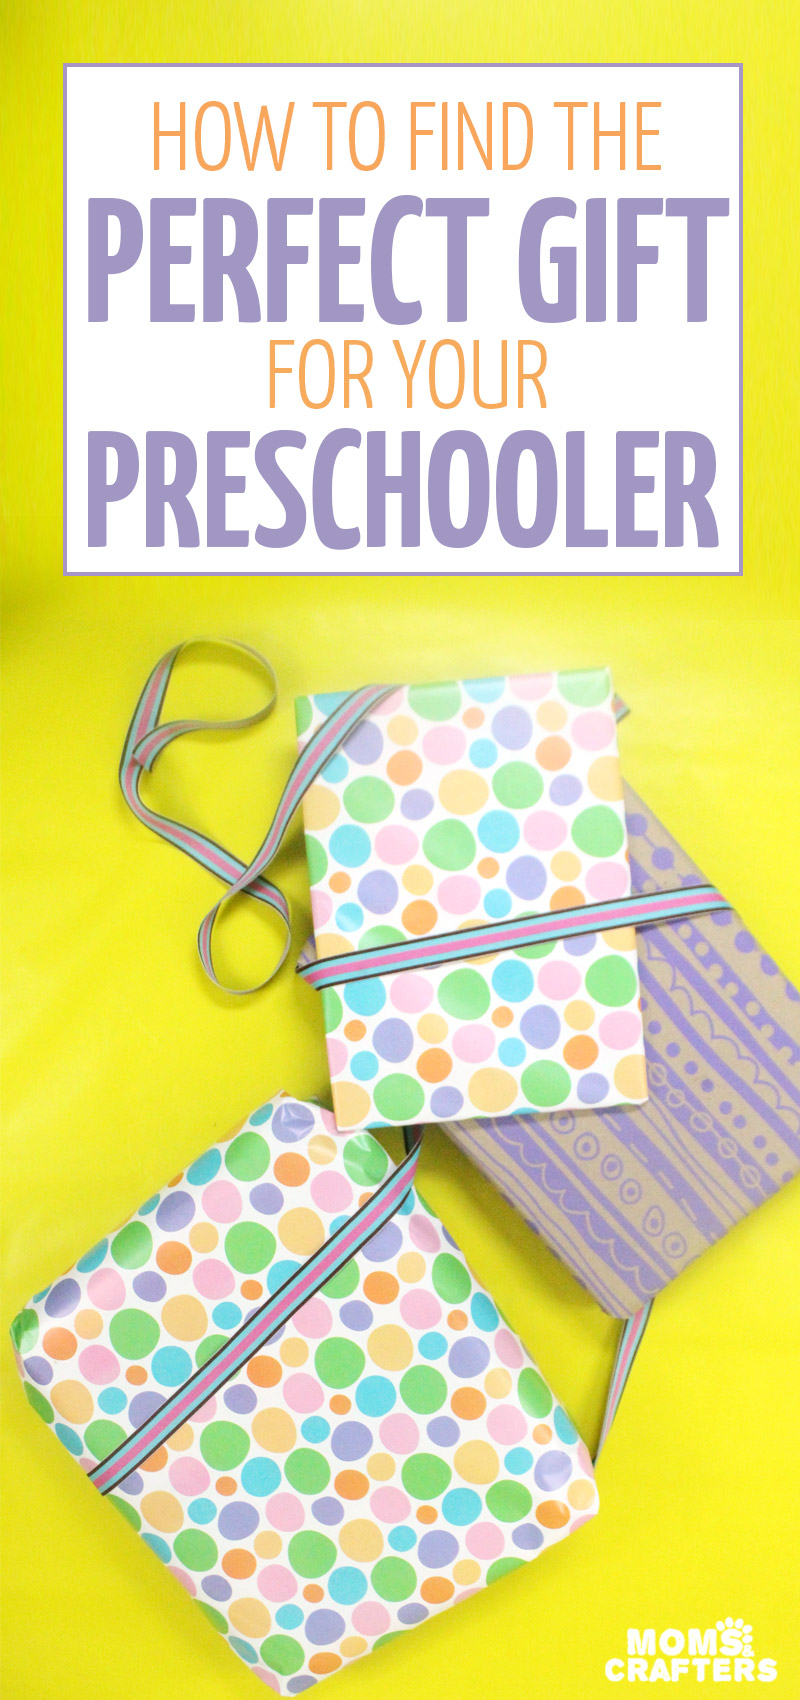 Looking for ideas for what makes great gifts for preschoolers? These parenting tips will help you choose yourself what works for YOUR child - so that your gift won't be regifted...